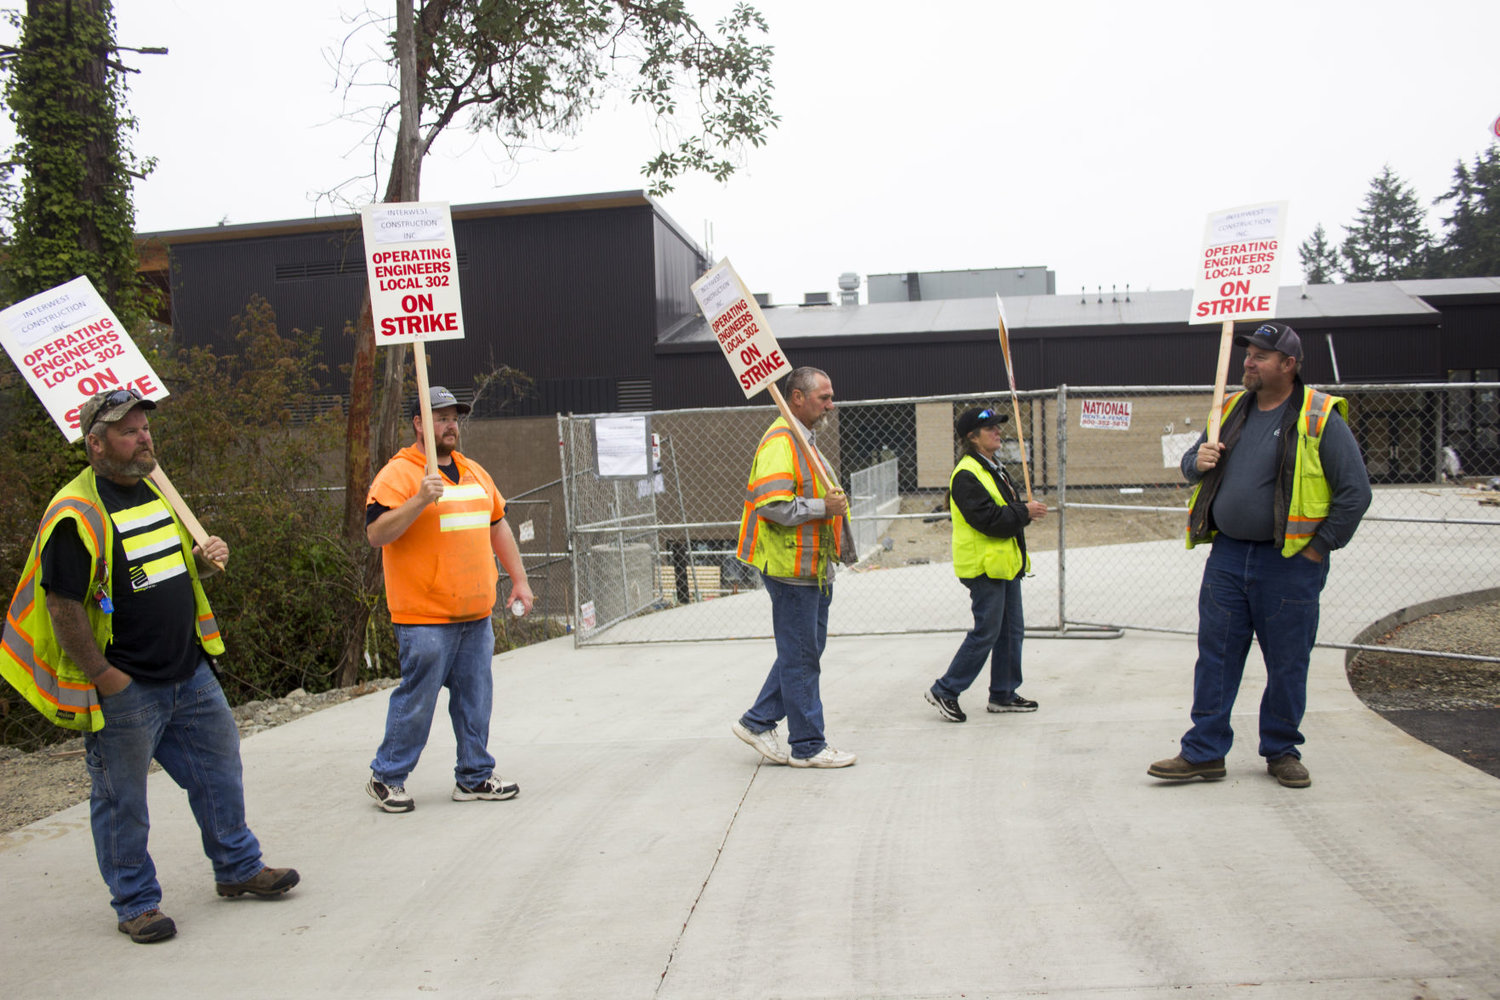 Members of the International Union of Operating Engineers, Local 302, took up pickets and marched at the site of Salish Coast Elementary Aug. 23. Leader photo by Kirk Boxleitner